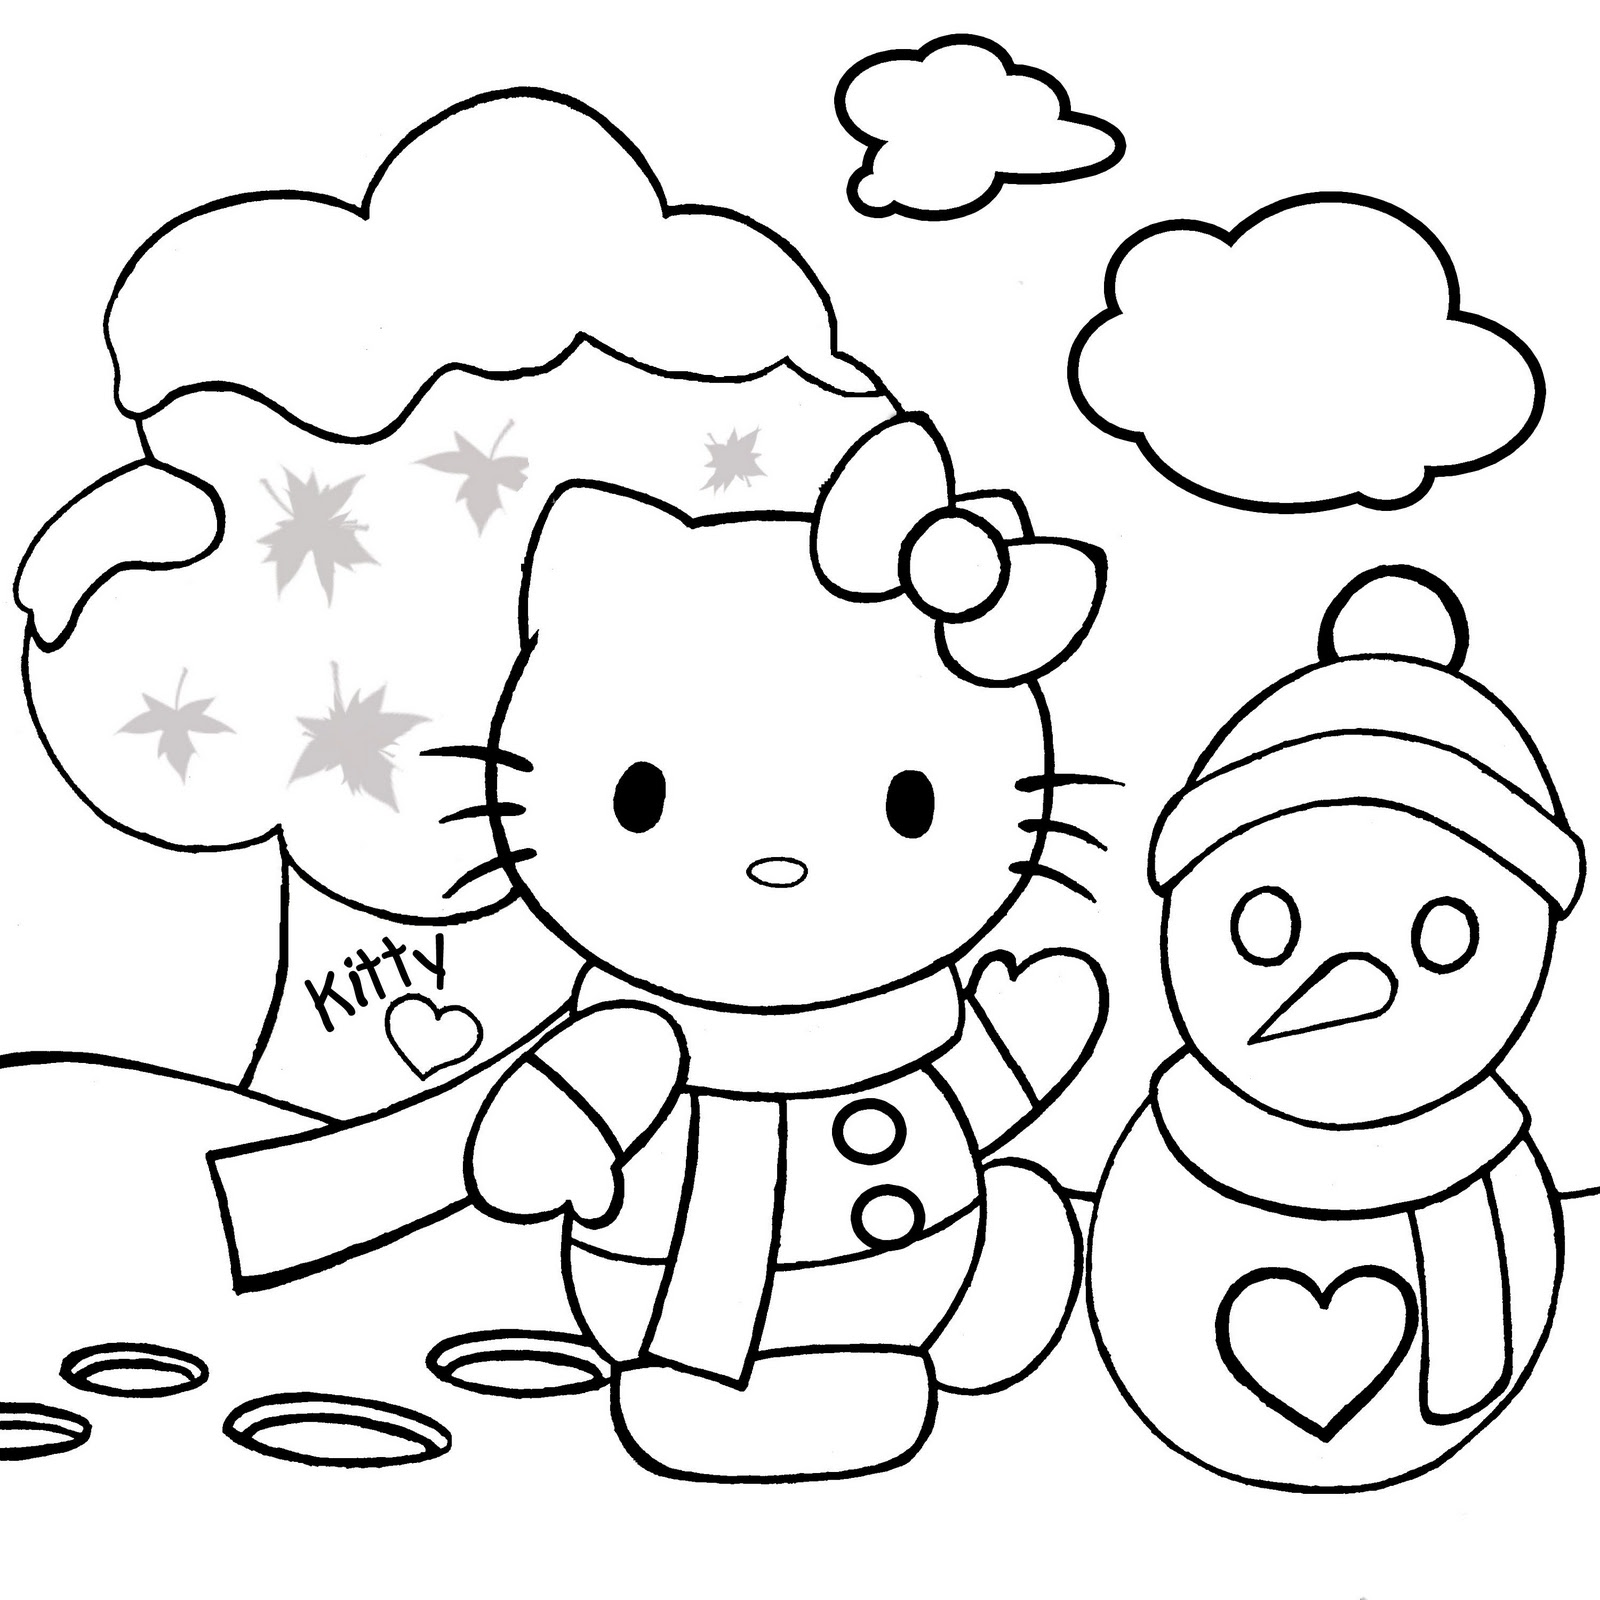 childrens christmas colouring childrens christmas coloring pictures only coloring pages christmas childrens colouring